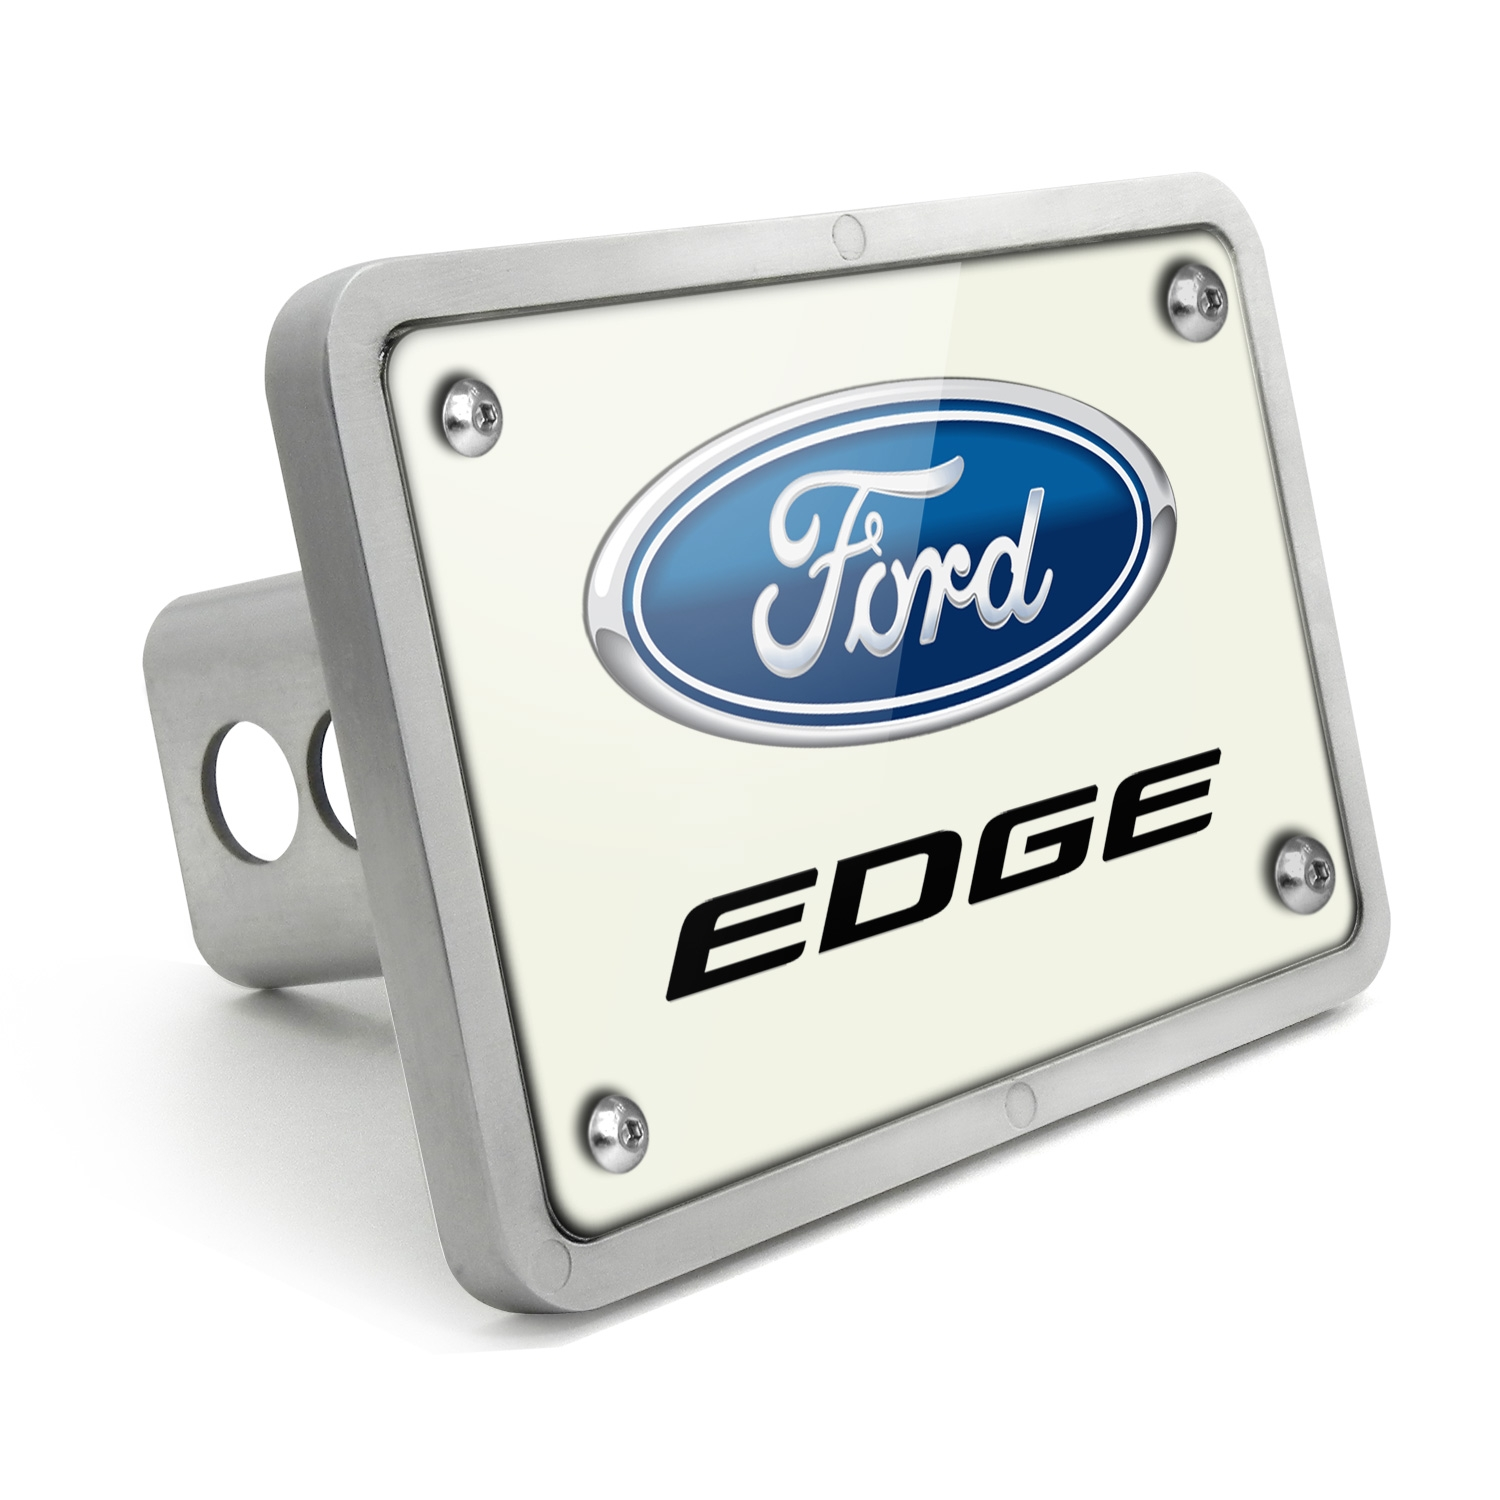 Ford Edge UV Graphic White Plate Billet Aluminum 2 inch Tow Hitch Cover